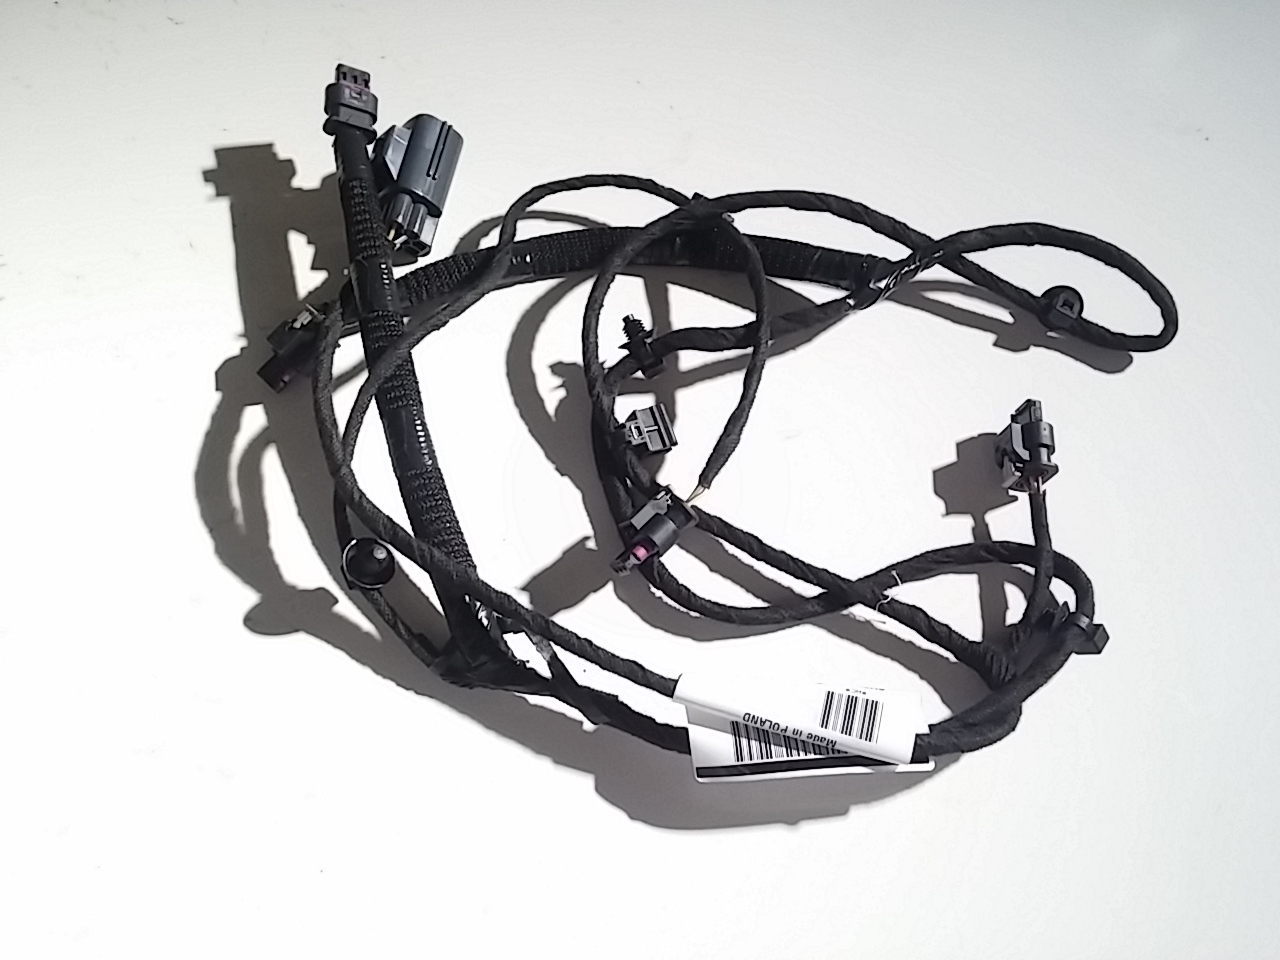 2006 Volvo C70 Wiring Harness  Park Assist   Rear   2005